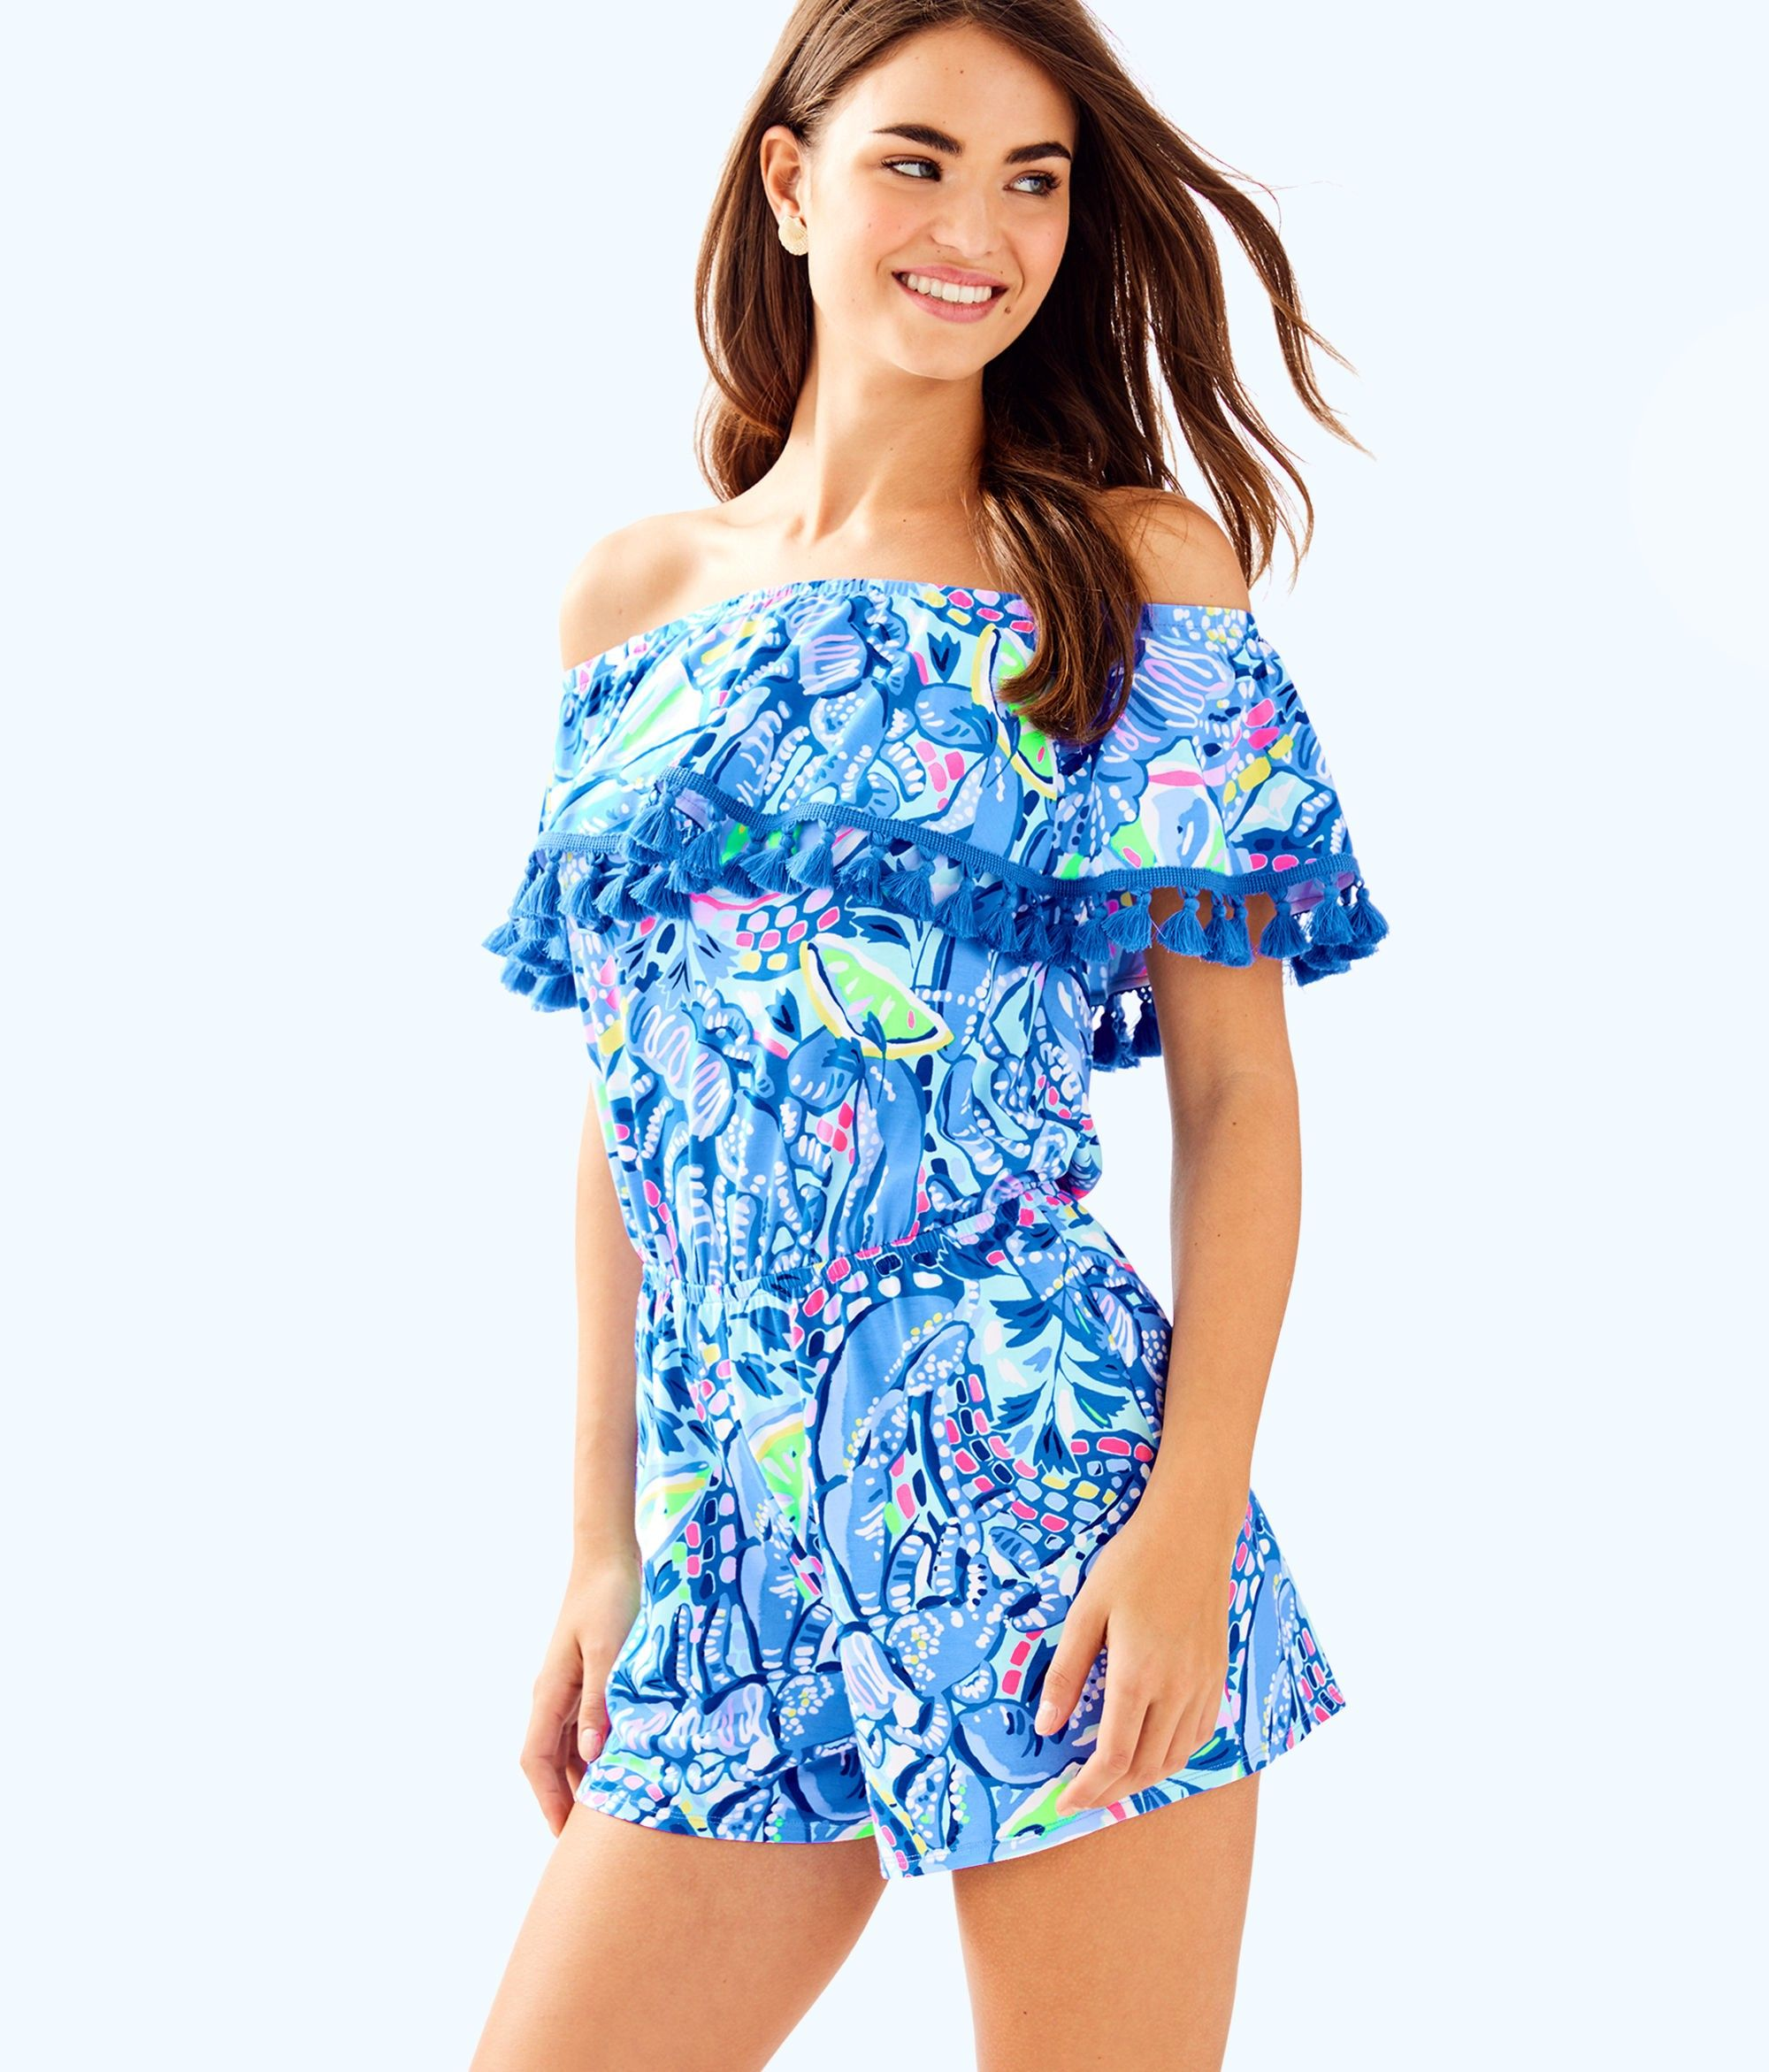 Lilly pulitzer la fortuna off the shoulder romper xxs gold products